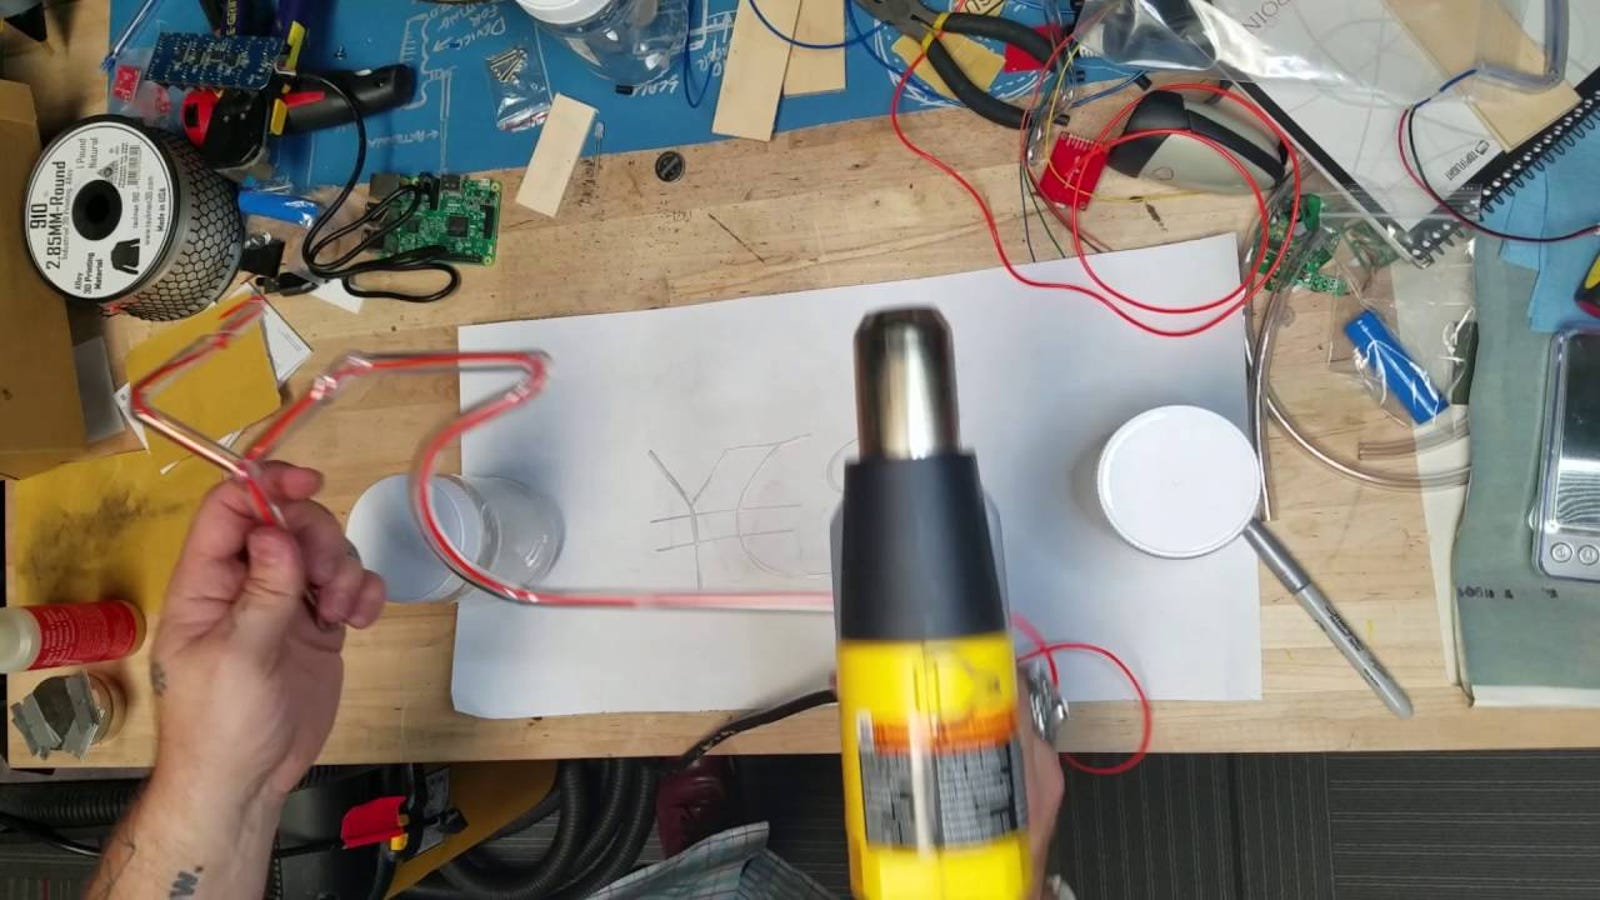 Make Your Own Diy Neon Sign With El Wire And Plastic Tubes Wiring A Light